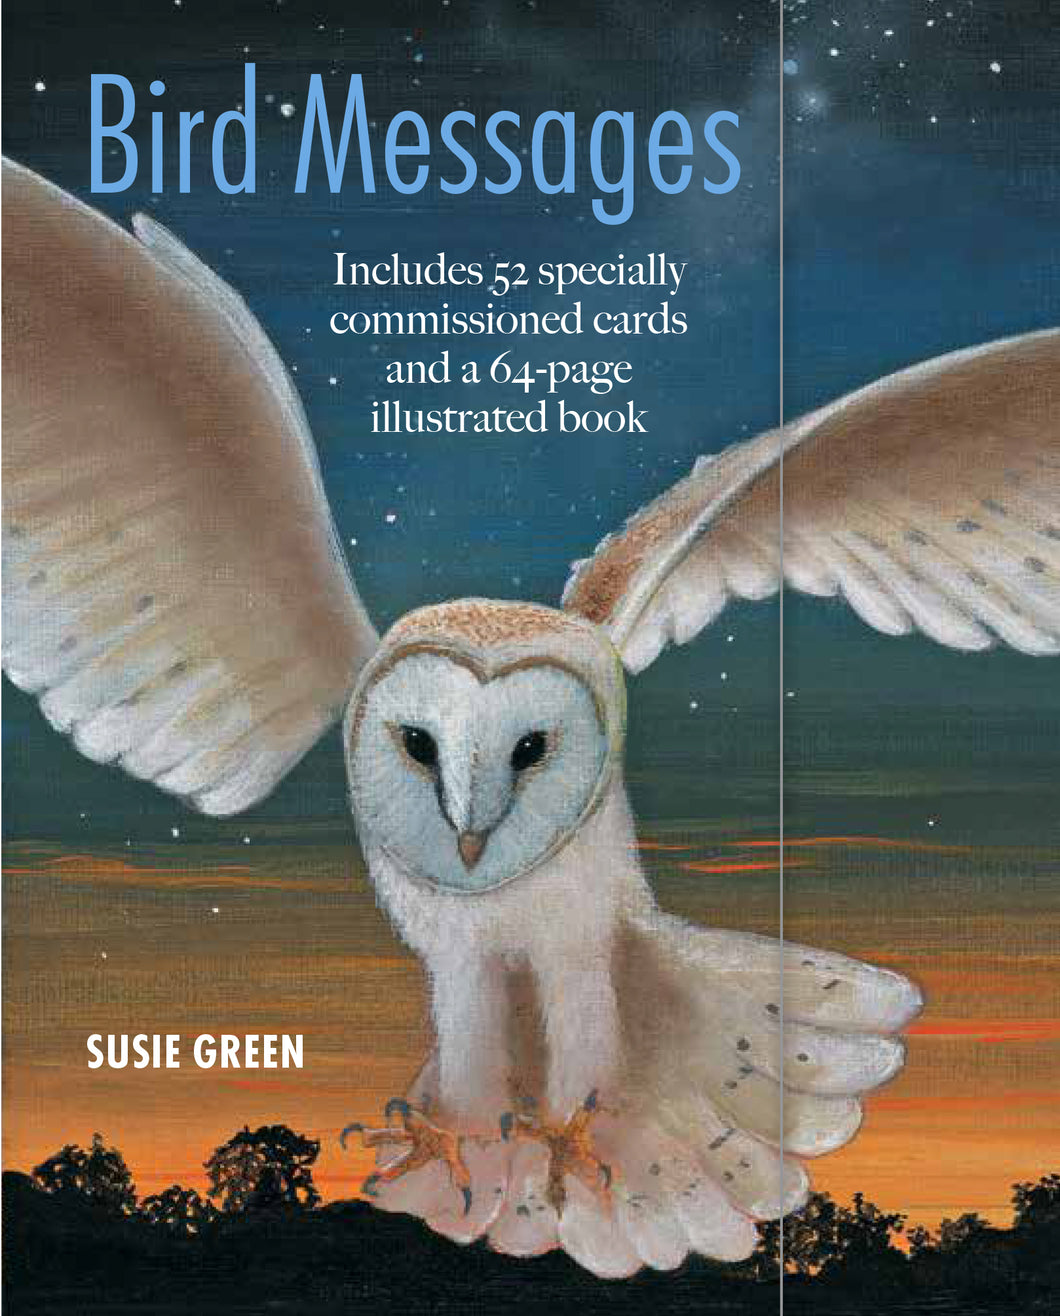 Bird Messages